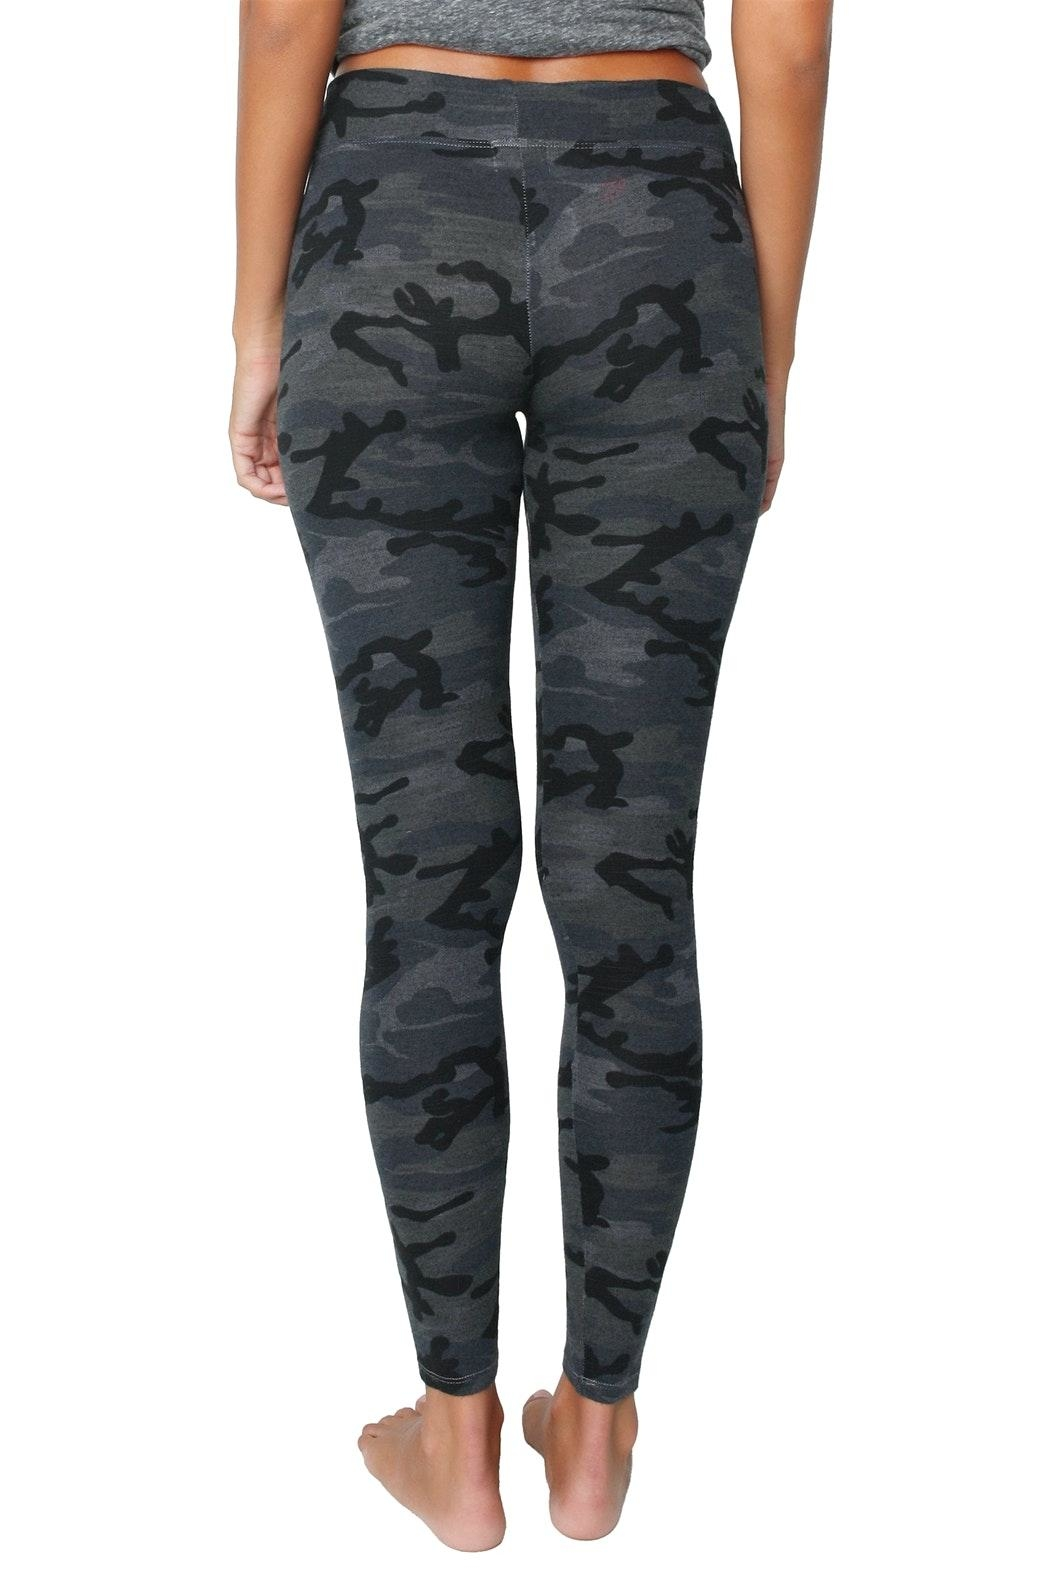 Sundry Black Camo Yoga Pant - Back Cropped Image